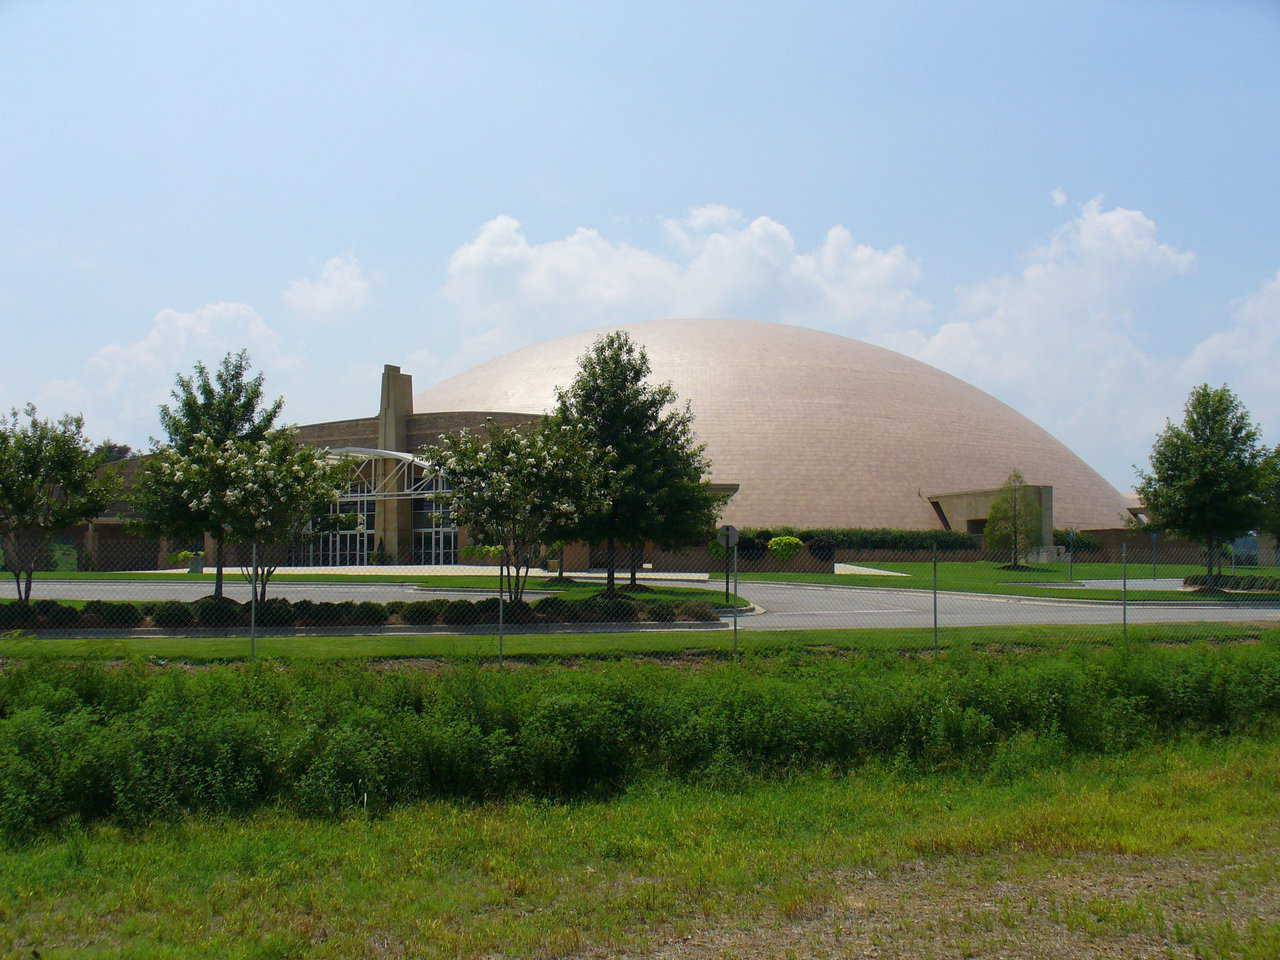 Faith Chapel — Faith Chapel Christian Center, a mega-church complex of six Monolithic Domes. Its sanctuary has a diameter of 280 feet, a height of 72 feet, and an interior of 61,575 square feet with seating for 3000, classrooms and offices.